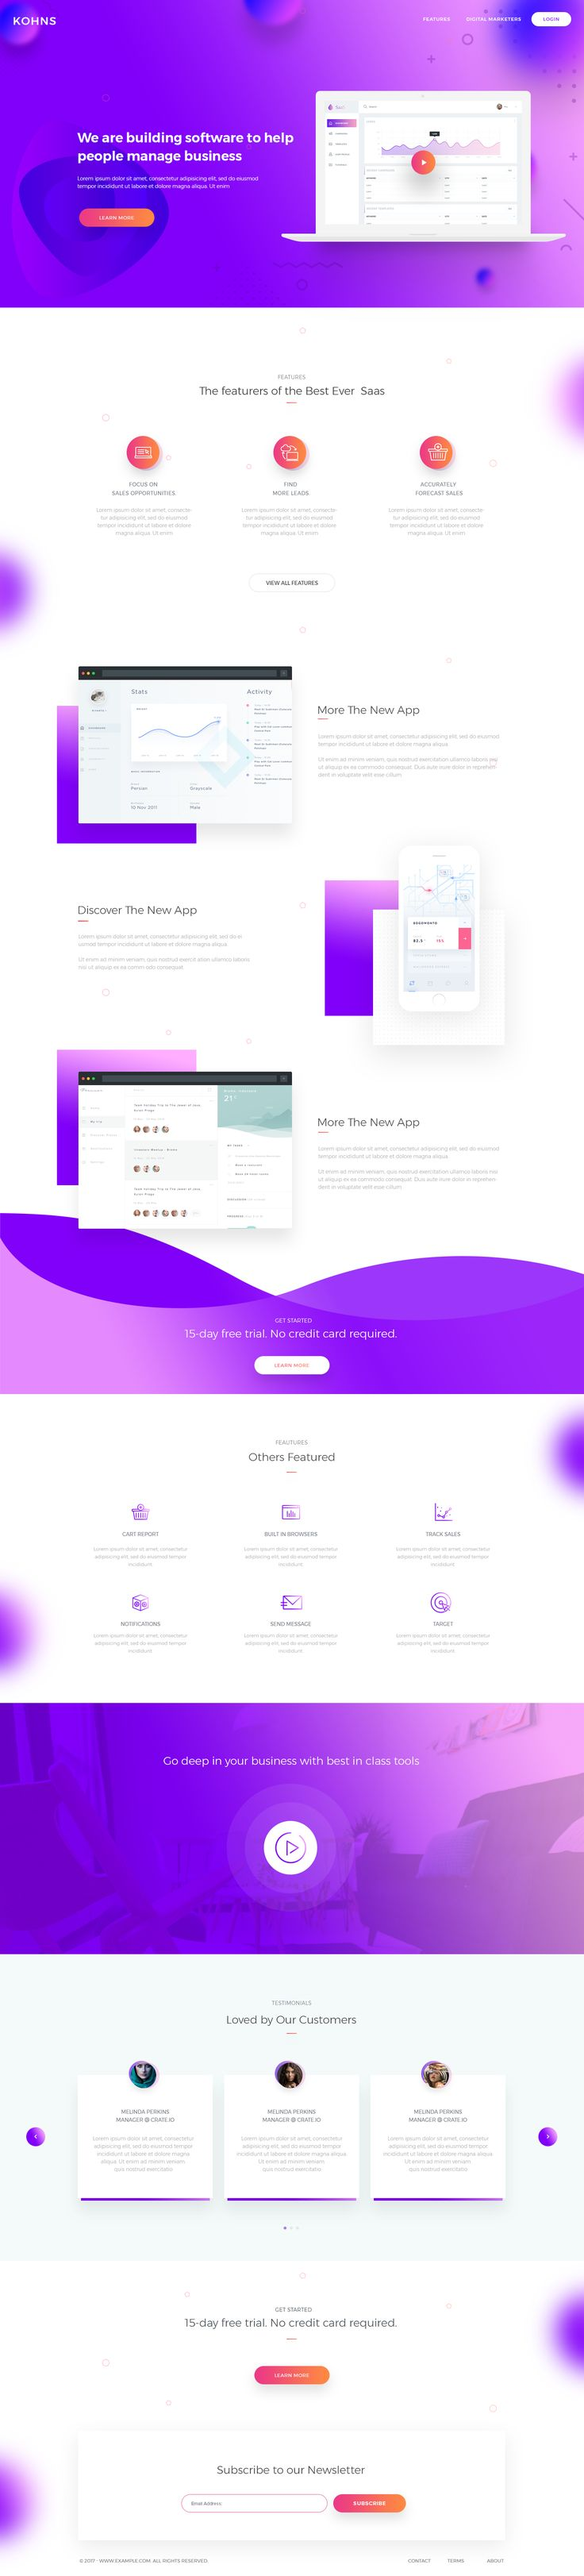 https://dribbble.com/shots/3958110-Saas-Landing-Page-V4/attachments/904161